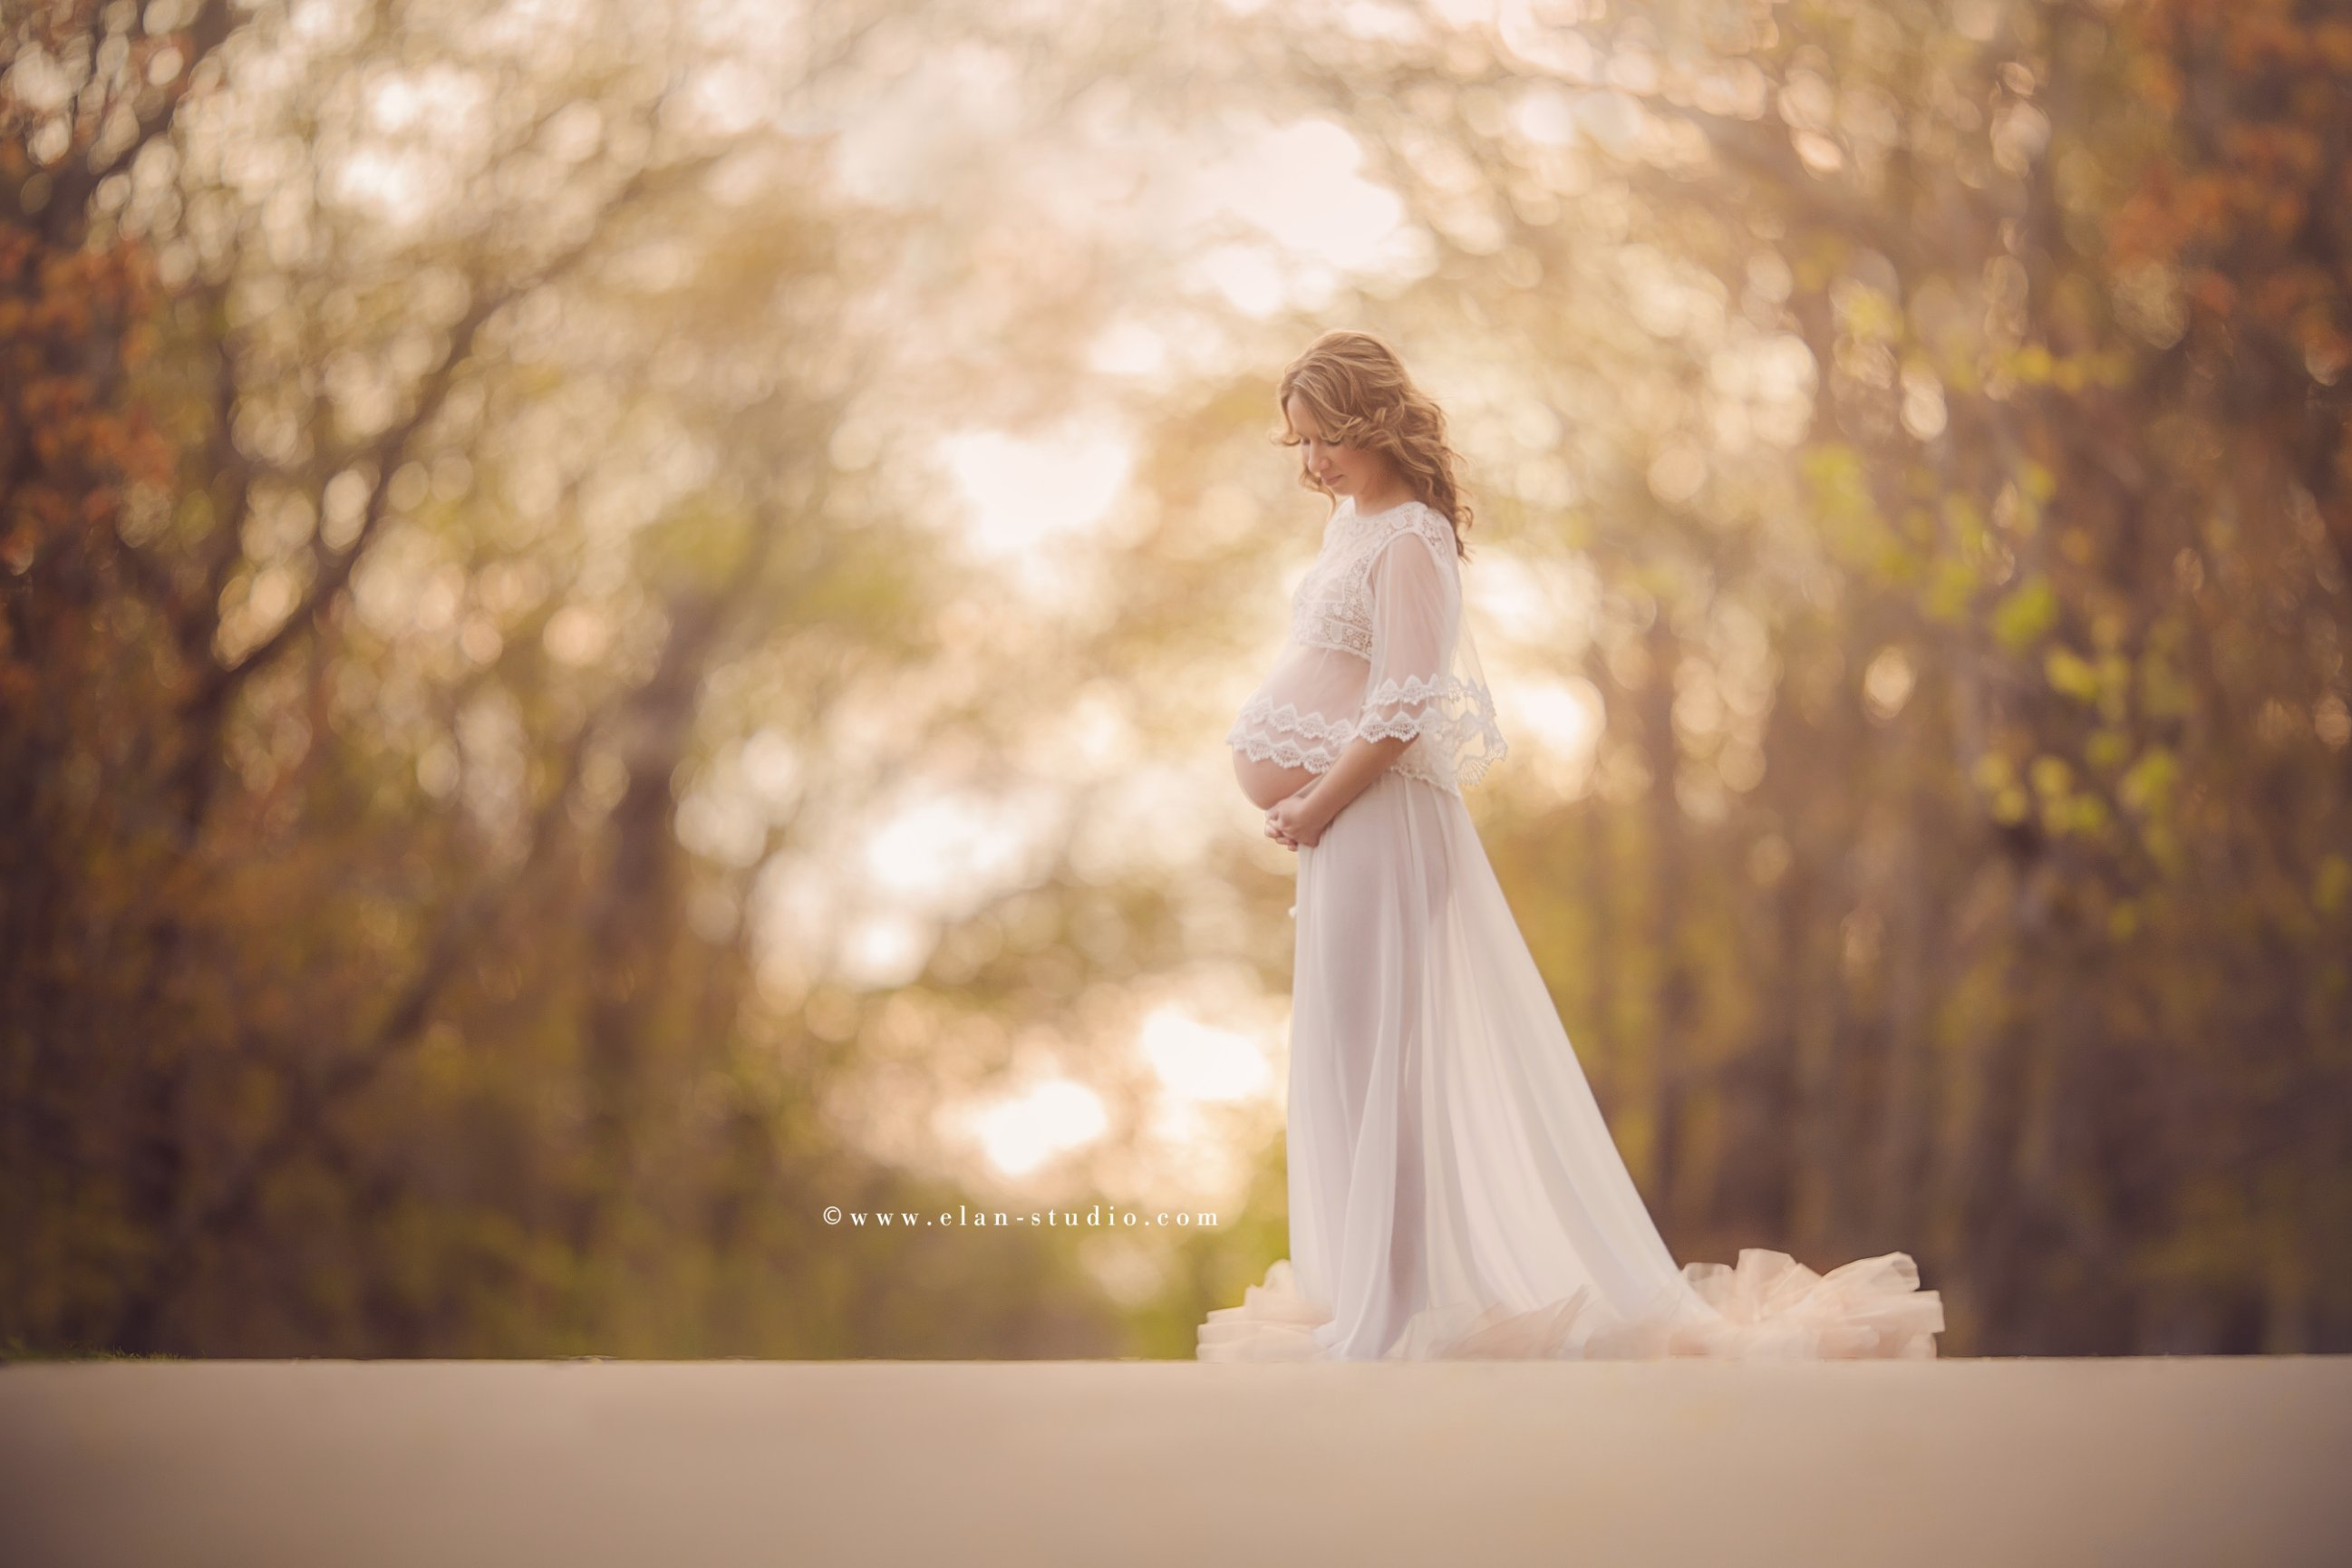 ethereal outdoor maternity portrait